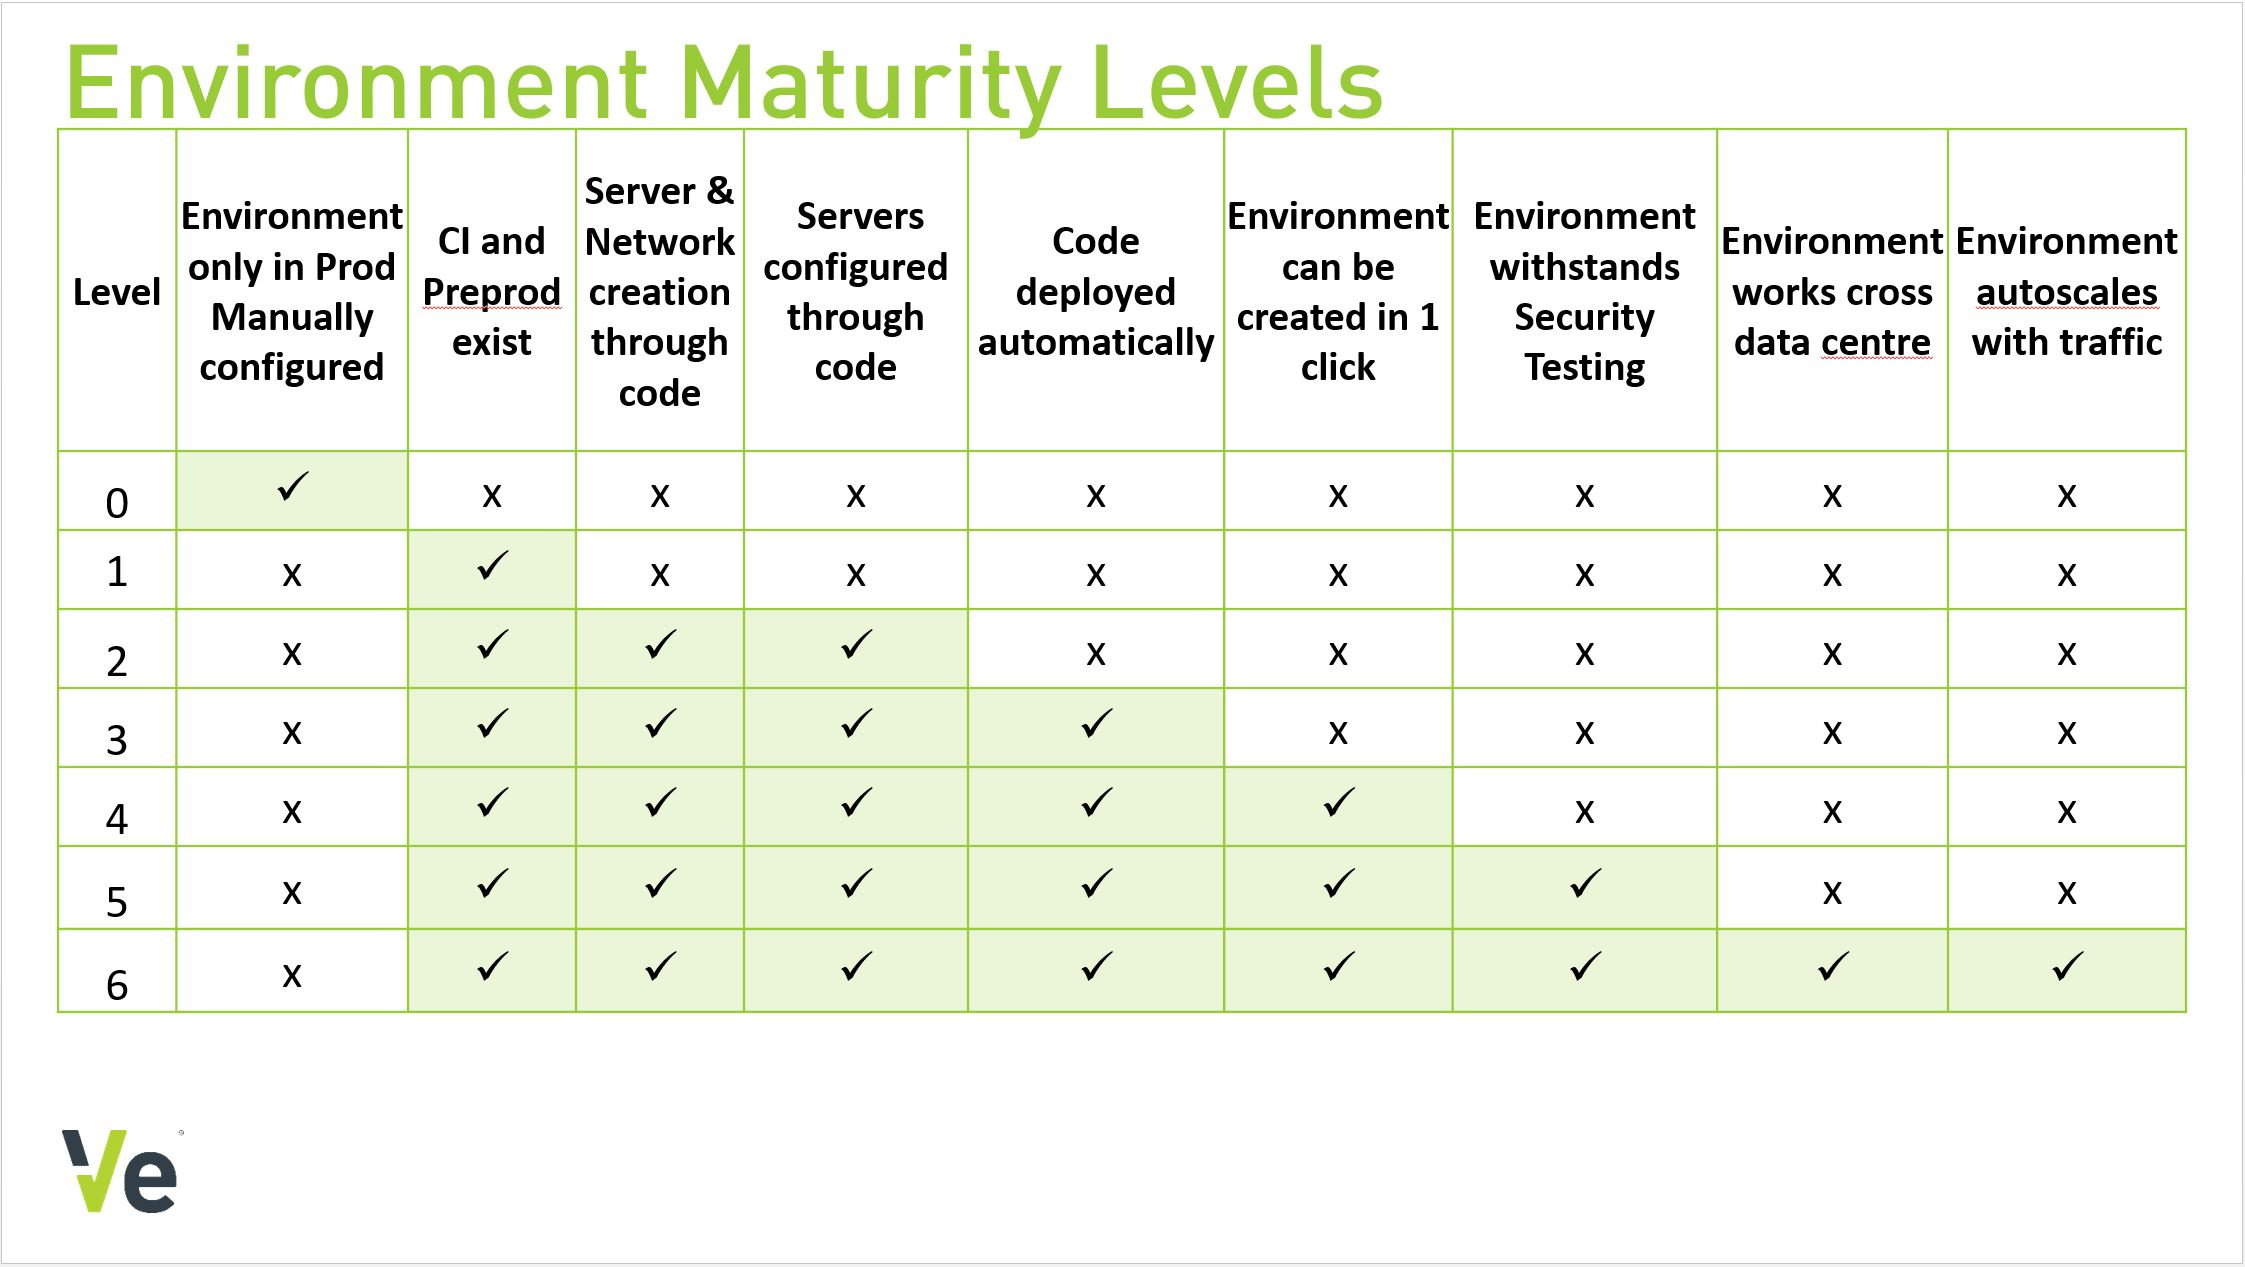 Environment Maturity Levels